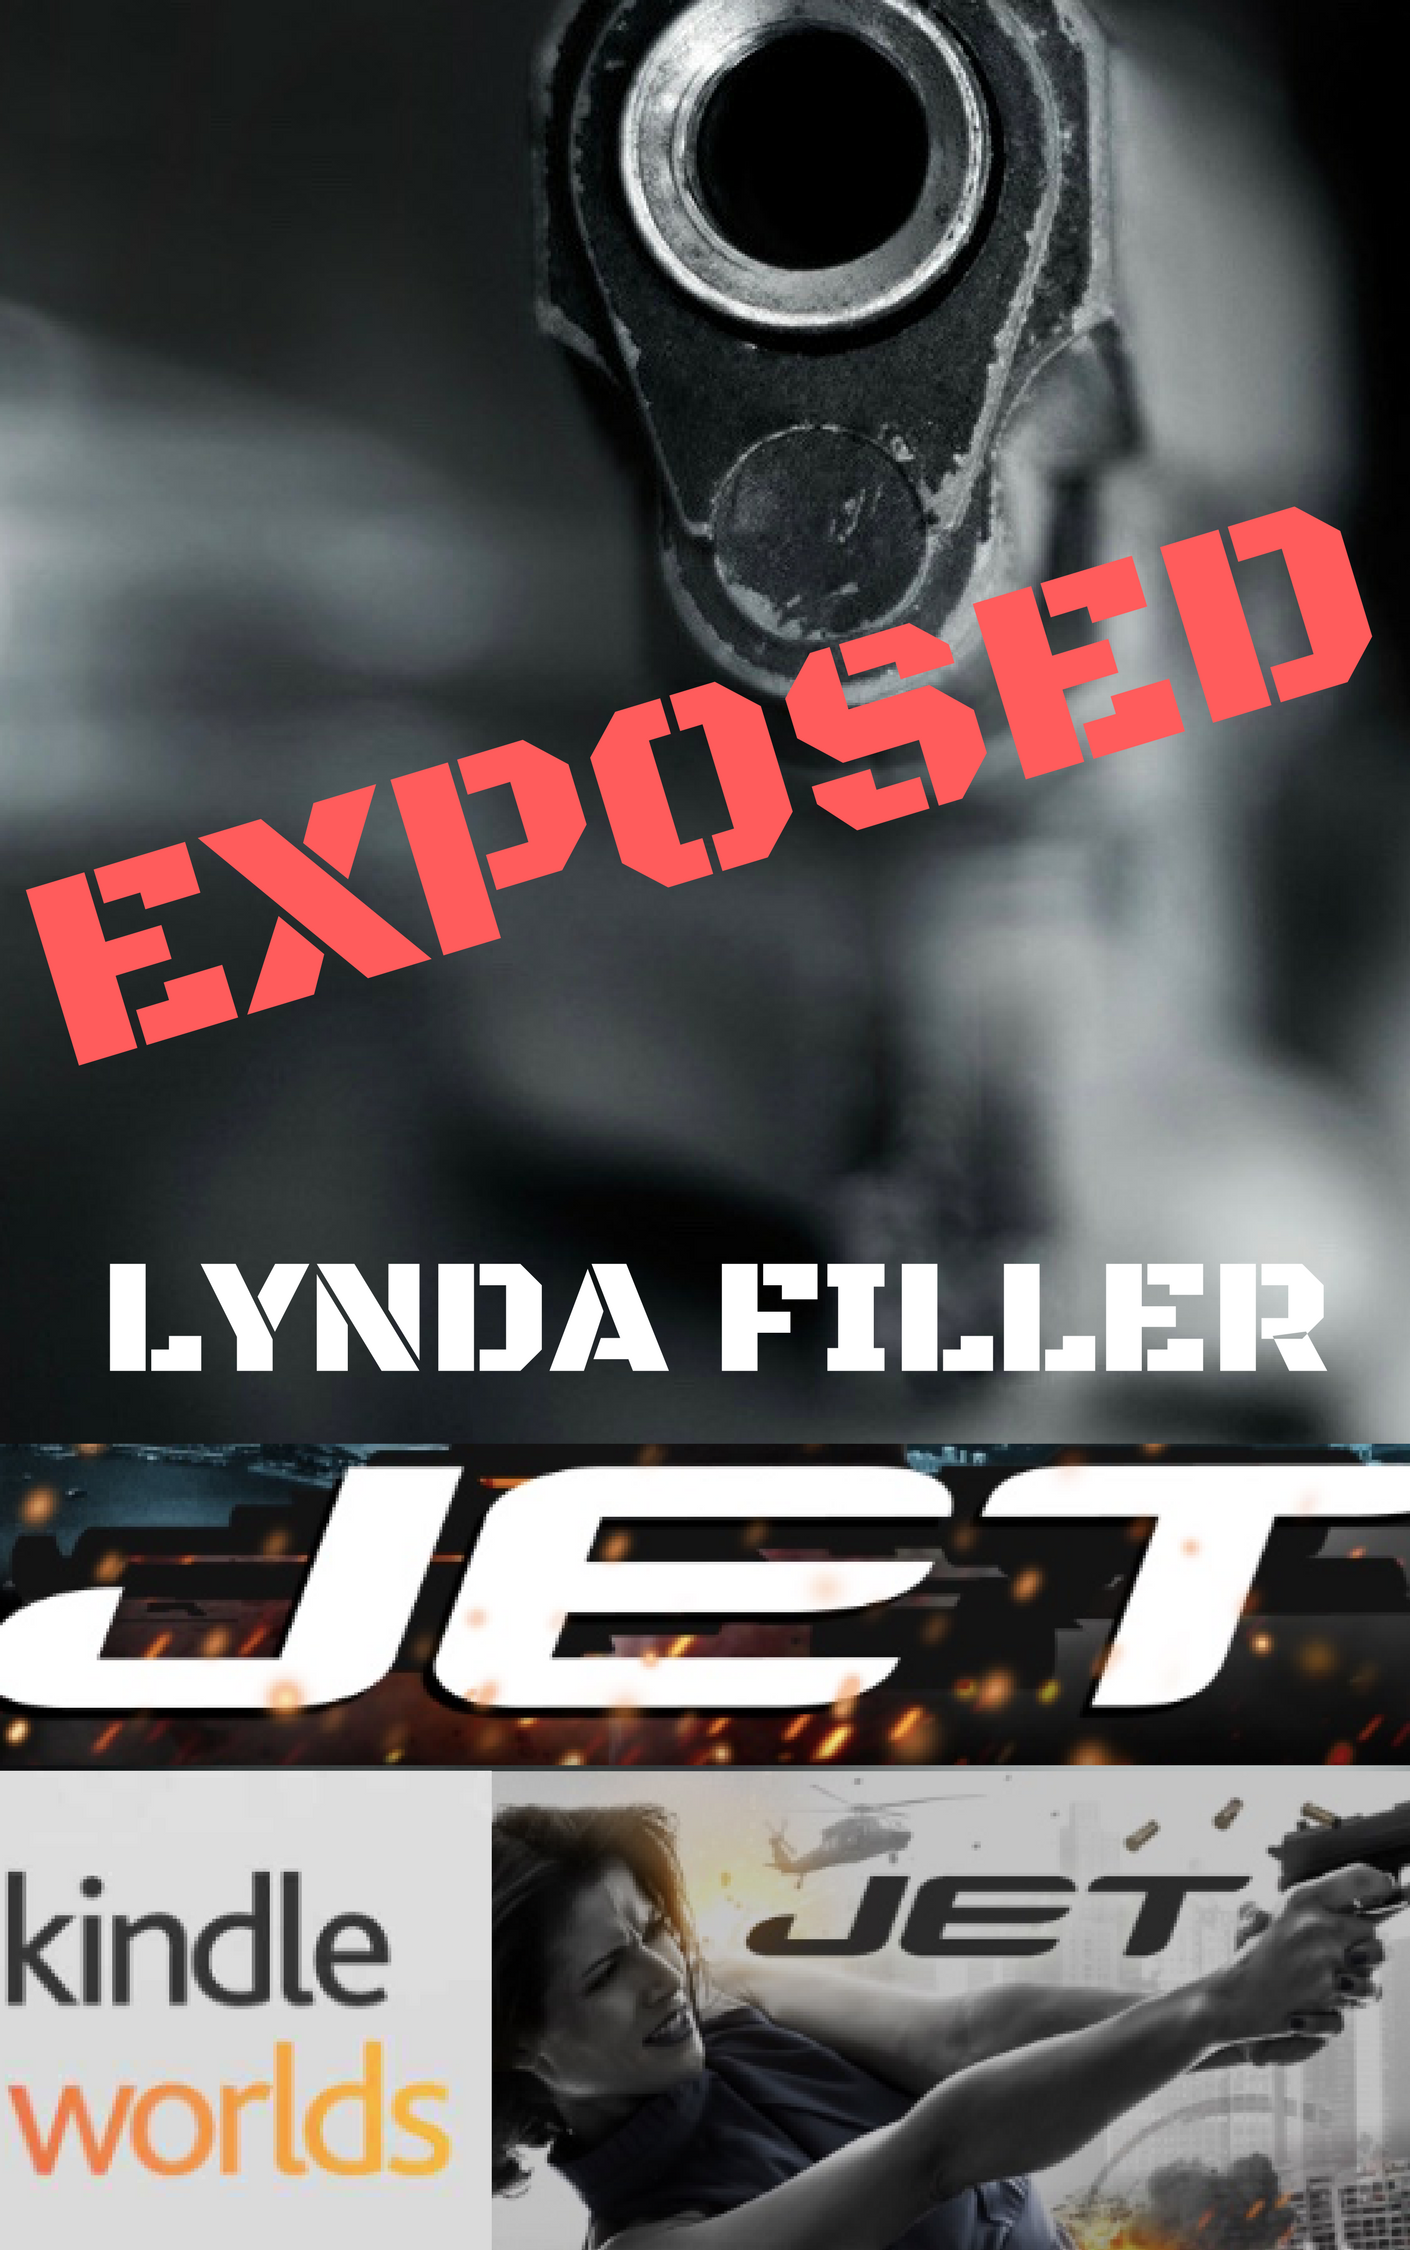 3KW-NEW COVER JET EXPOSED